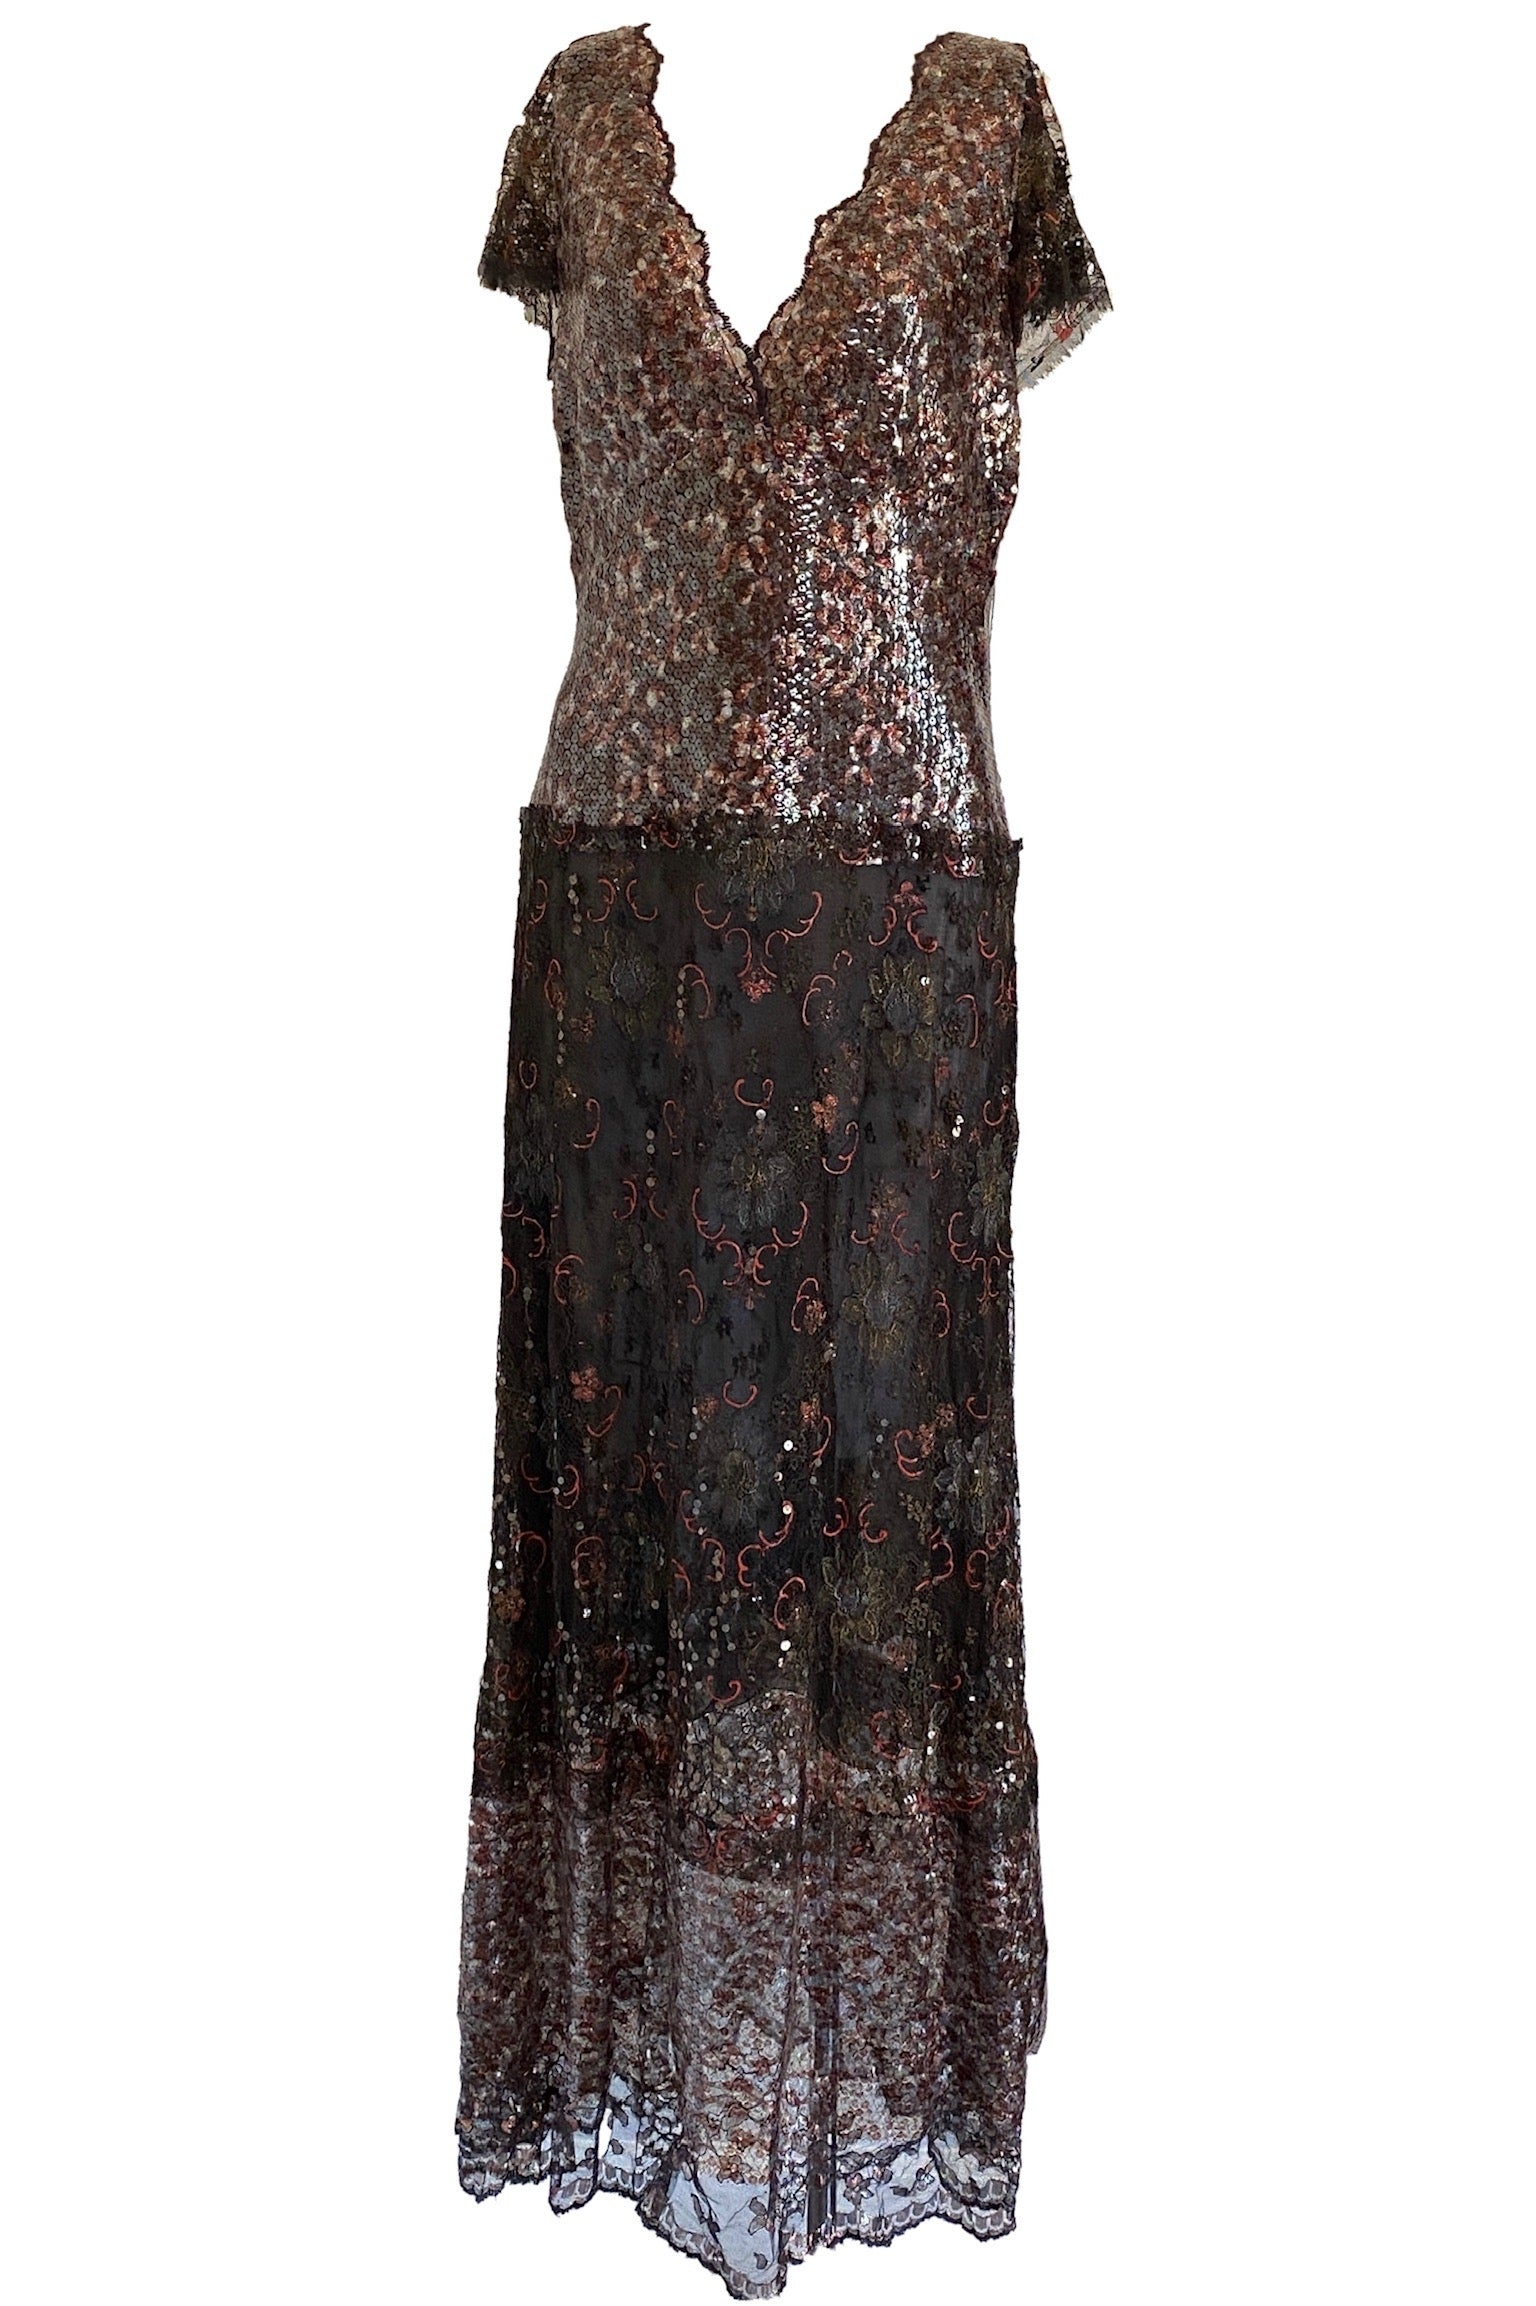 Chanel Red and Black Sequin and Floral Embroidered Lace Dress Size 42